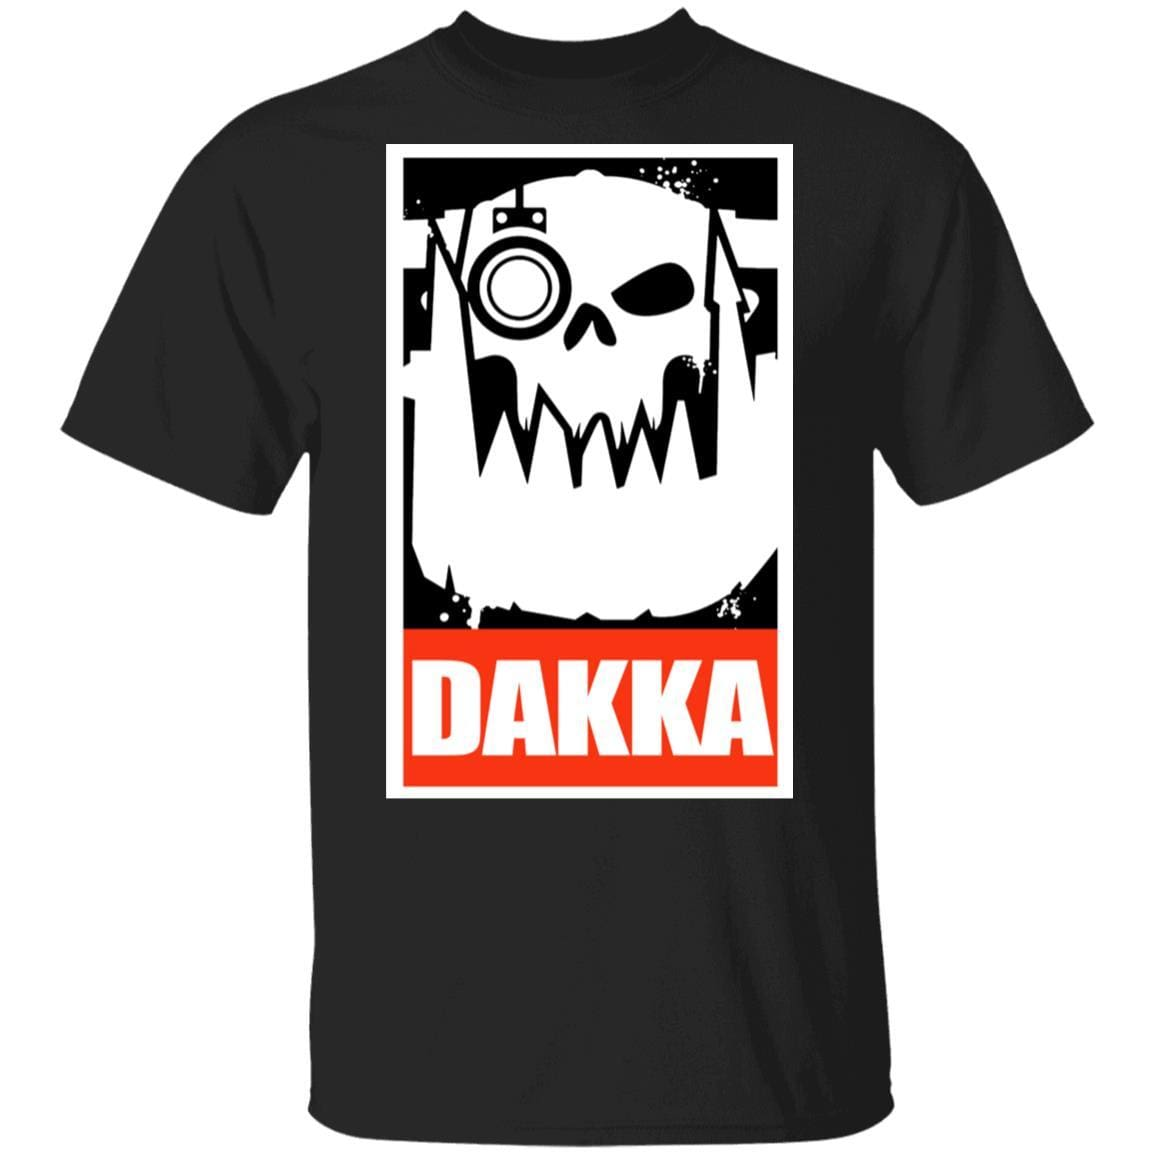 Orks Dakka Tabletop Wargaming and Miniatures Addict T-Shirts, Hoodies 1049-9953-88064149-48144 - Tee Ript